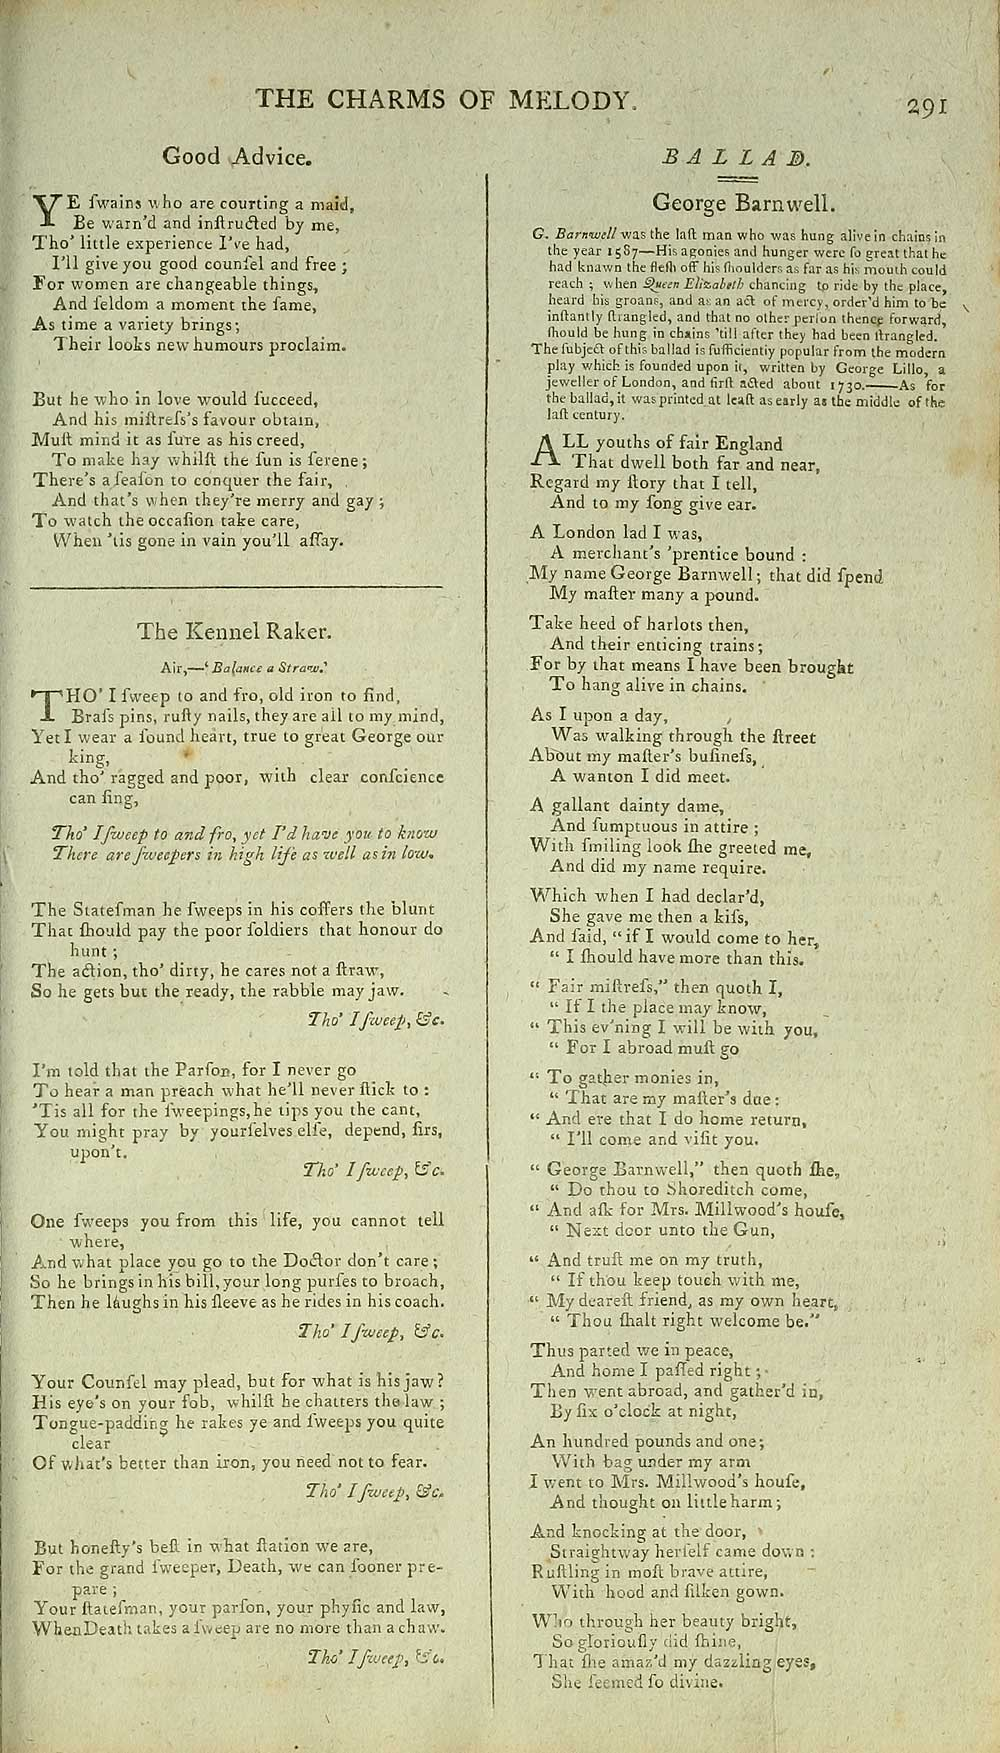 279) Page 291 - Good advice - Glen Collection of printed